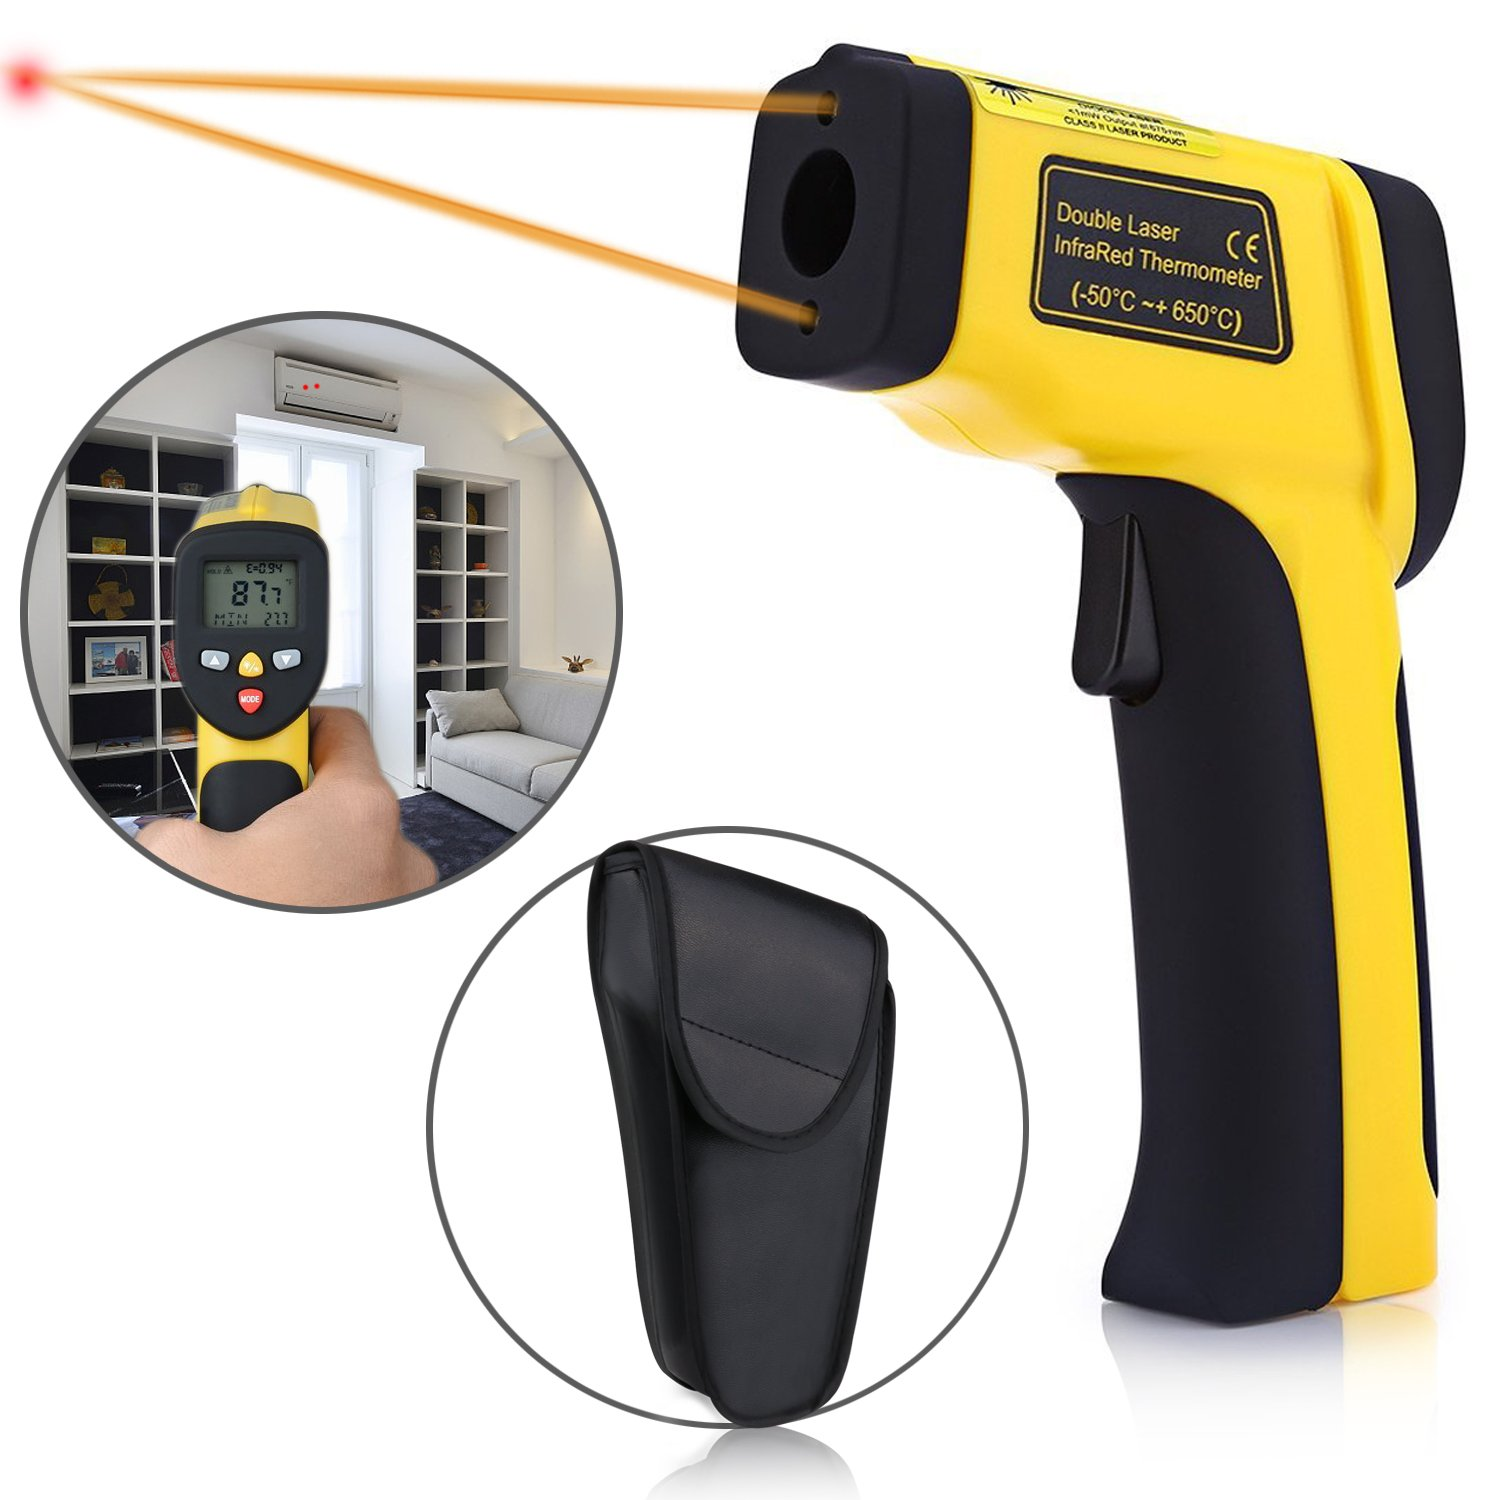 Temperature Gun, Elegant Choise Non-contact Digital Infrared IR Thermometer LCD Backlit Adjustable Emissivity for Kitchen Cooking Automotive (-58℉~ 1202℉ / -50℃ ~ 650℃)